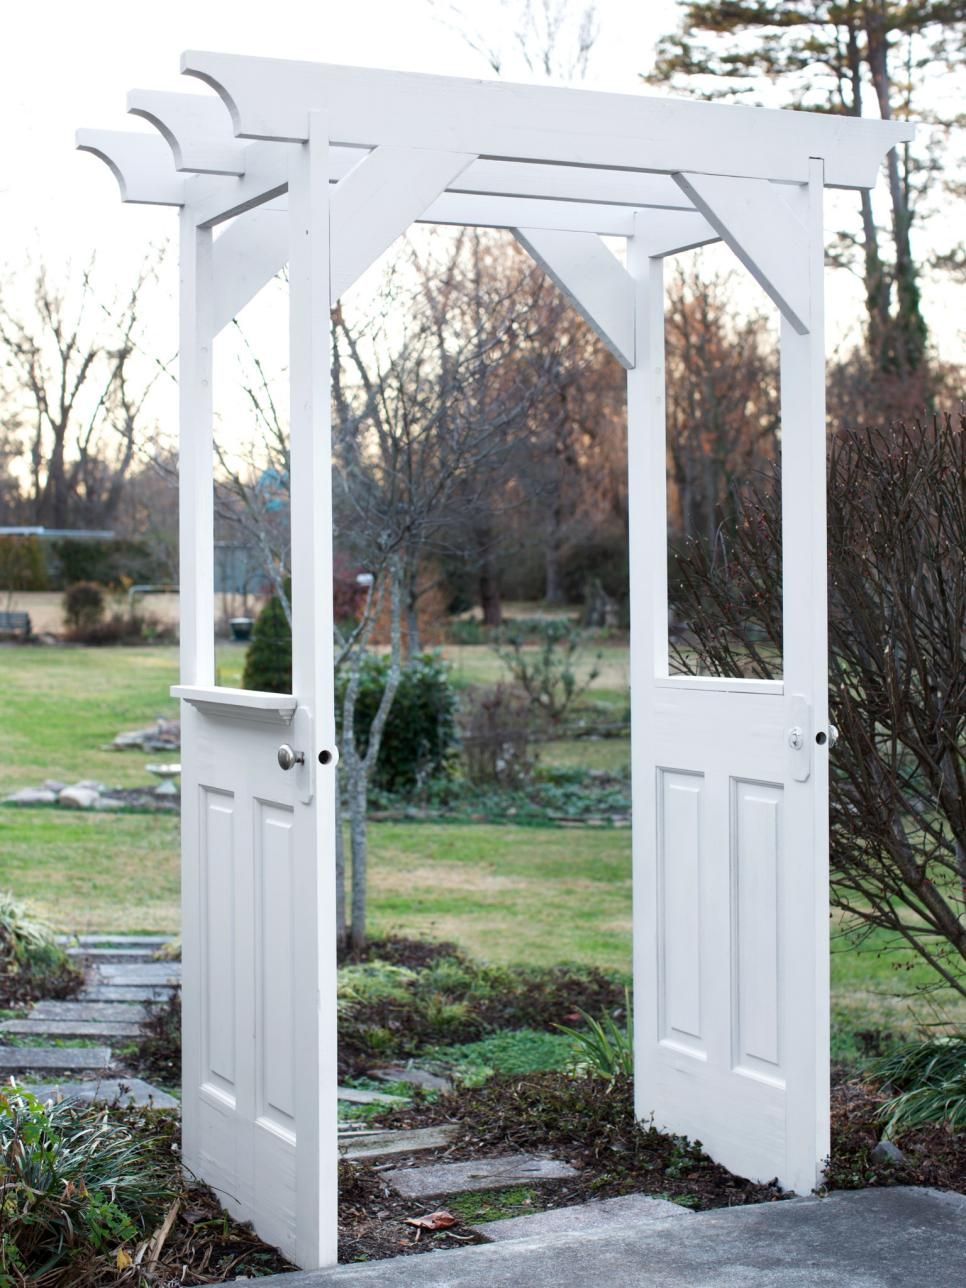 This small white arbor was constructed from repurposed doors. & This small white arbor was constructed from repurposed doors. | LAWN ...